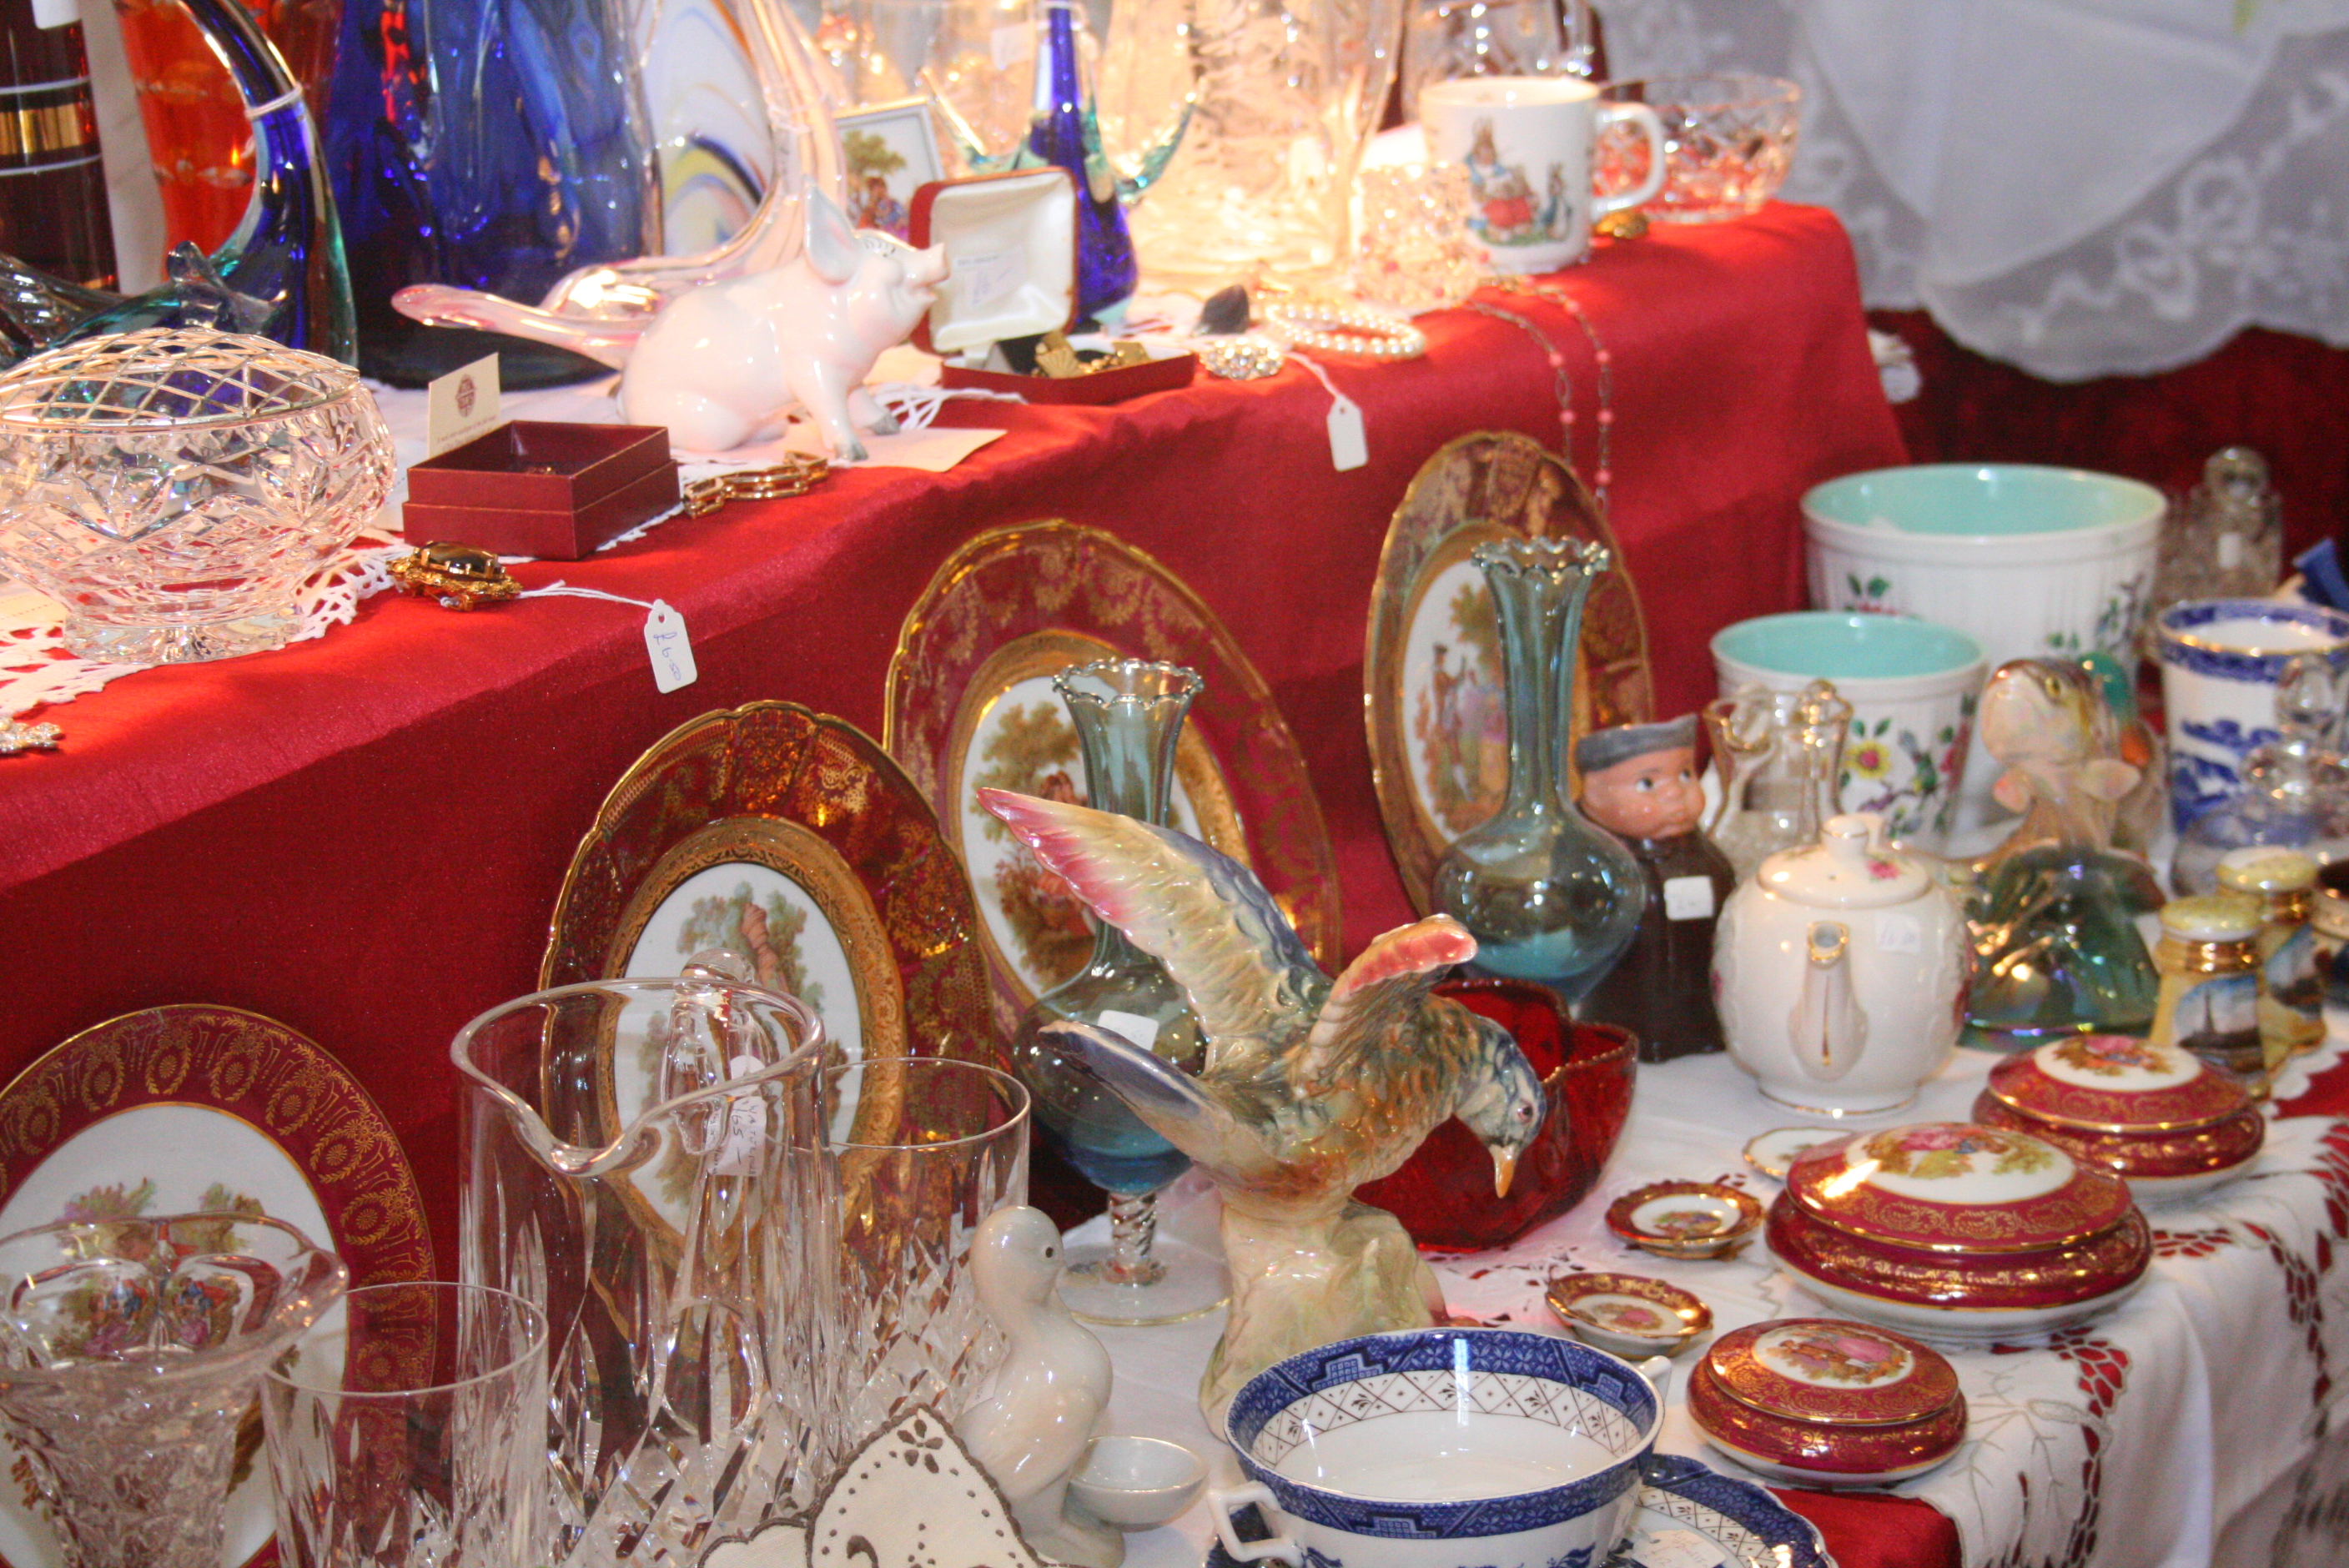 Antiques & Vintage Fair at the Skiddaw Hotel